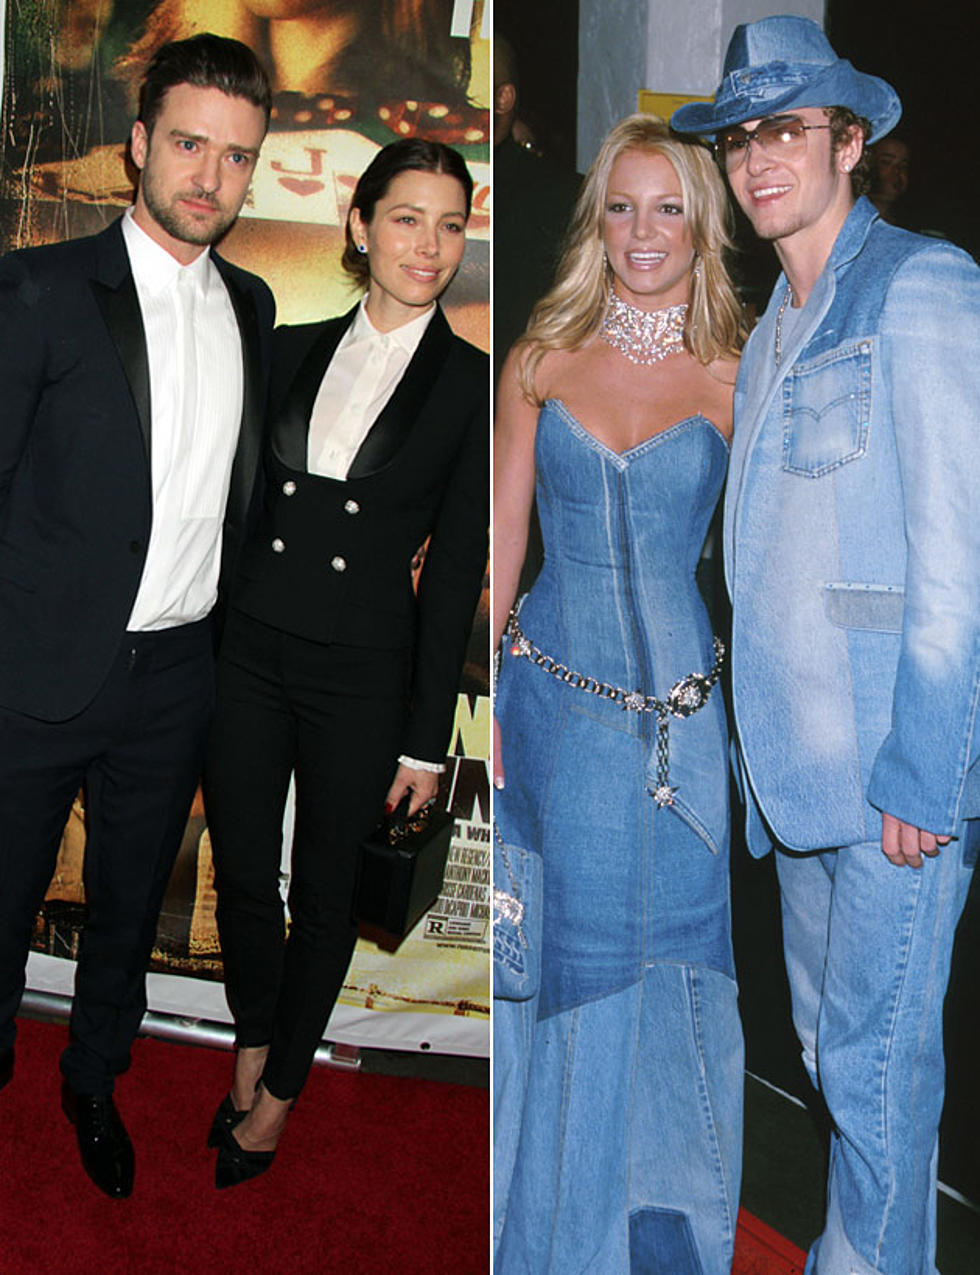 Black Tuxedo vs. Canadian Tuxedo: Which Matching Outfit With Justin ...